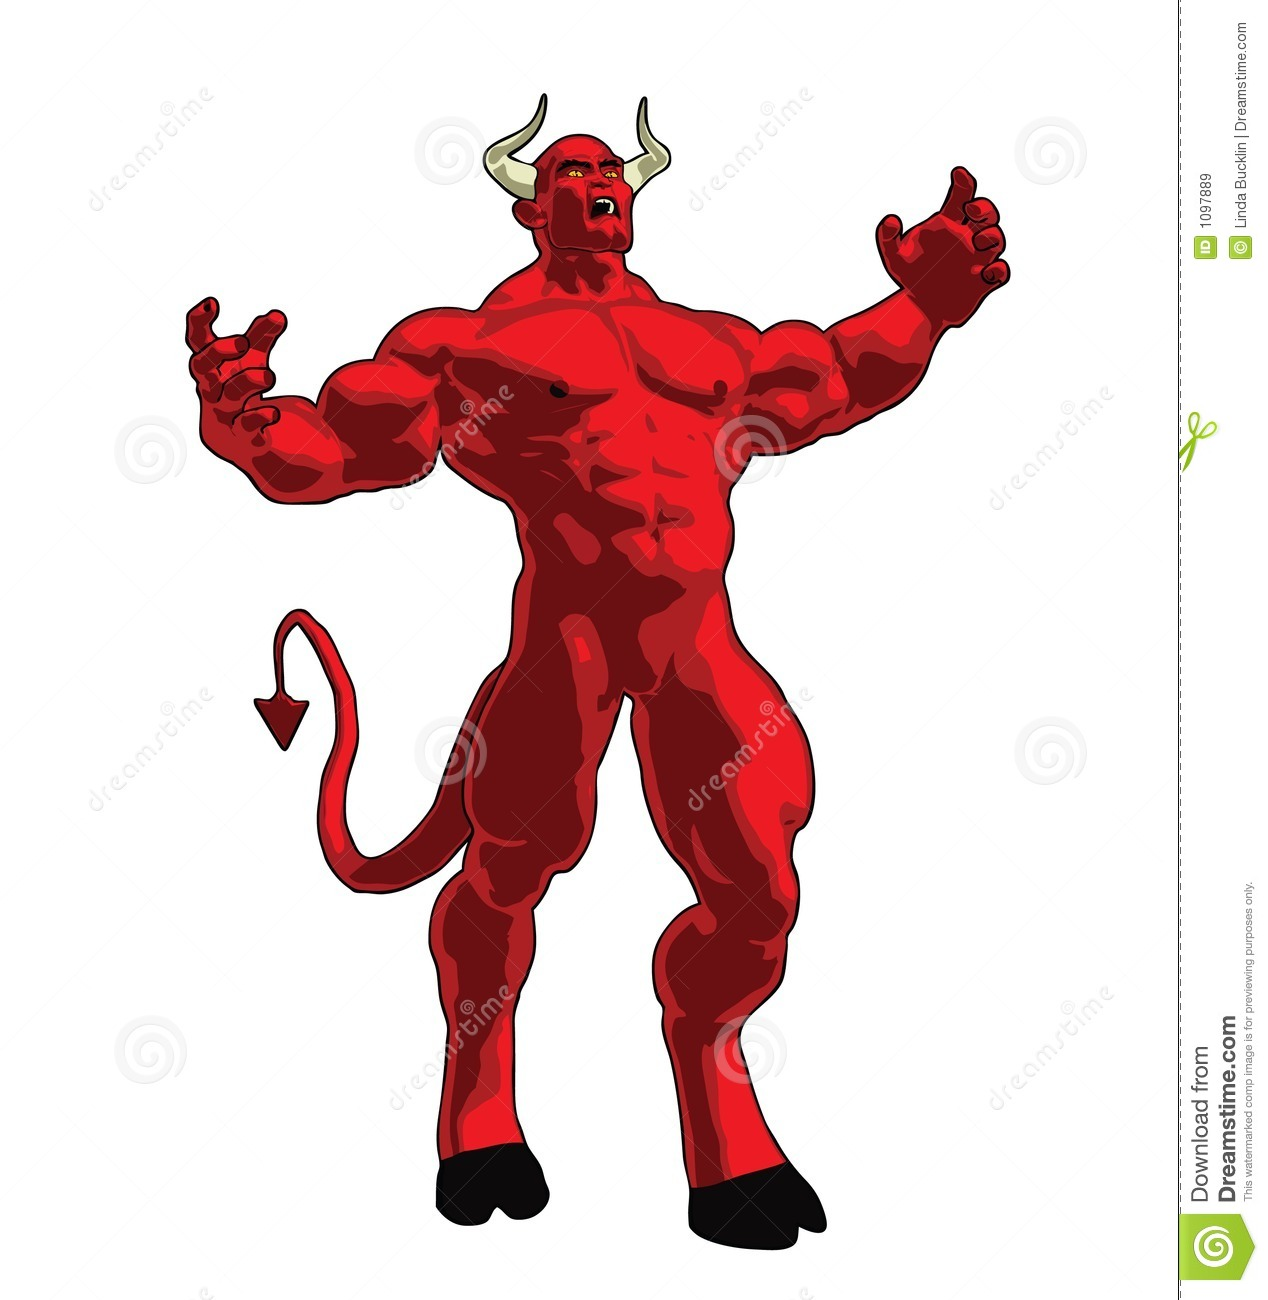 Angry Devil Royalty Free Stock Images - Image: 1097889